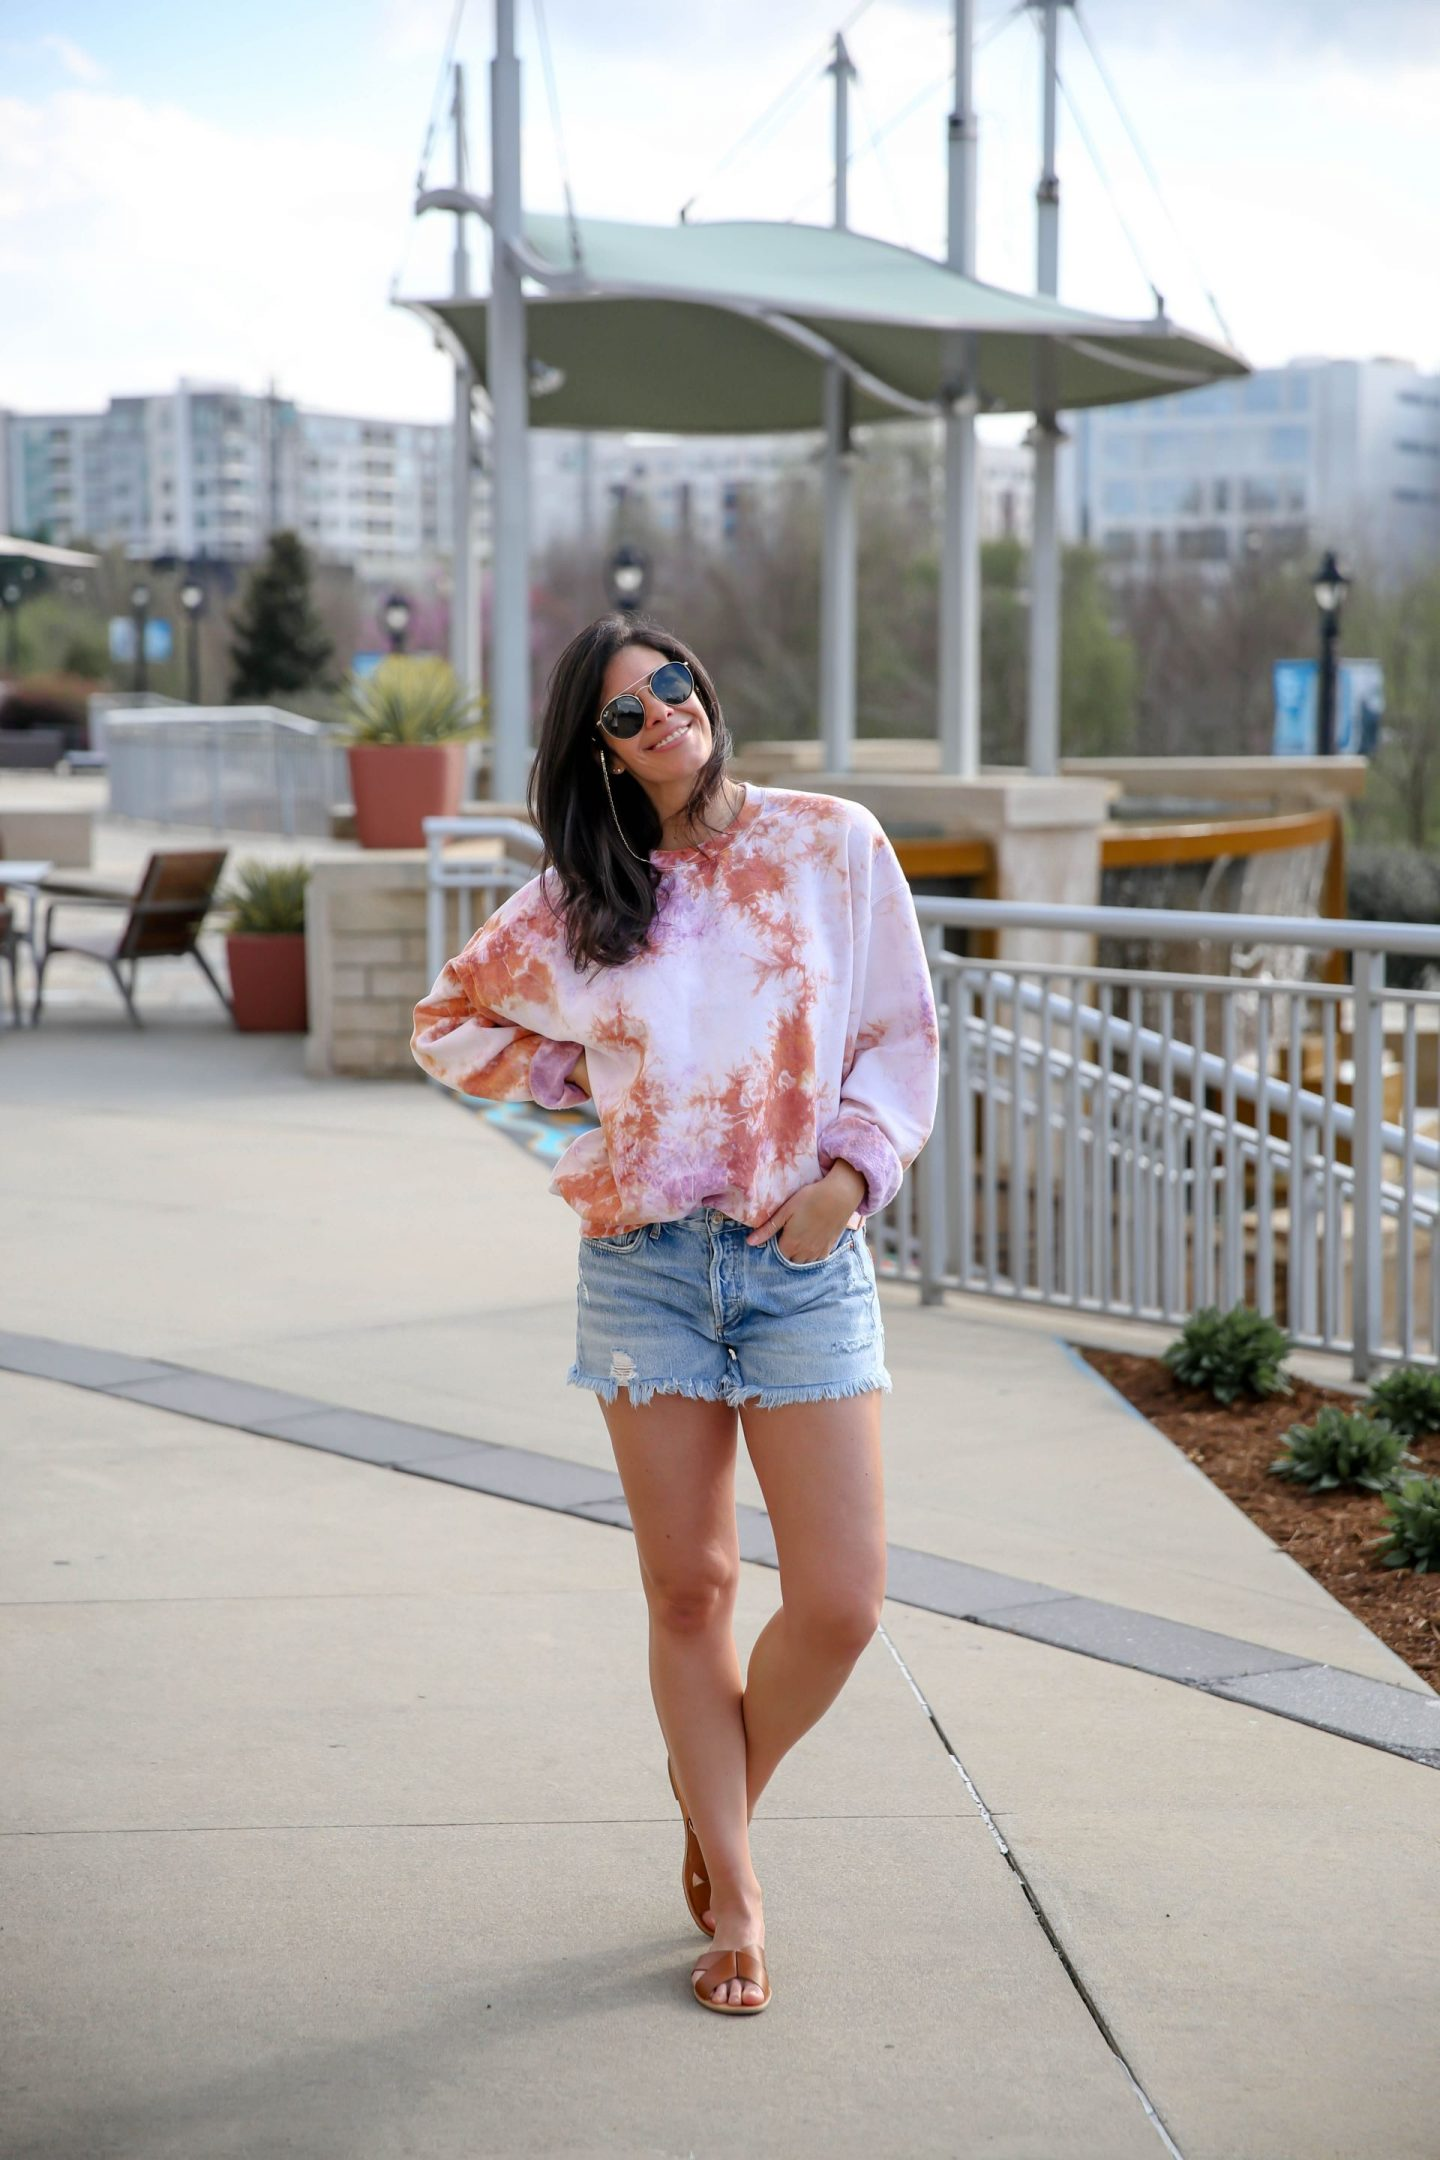 Denim Cutoff Shorts - Tie Dye Sweatshirt - Lauren Schwaiger Style Blog